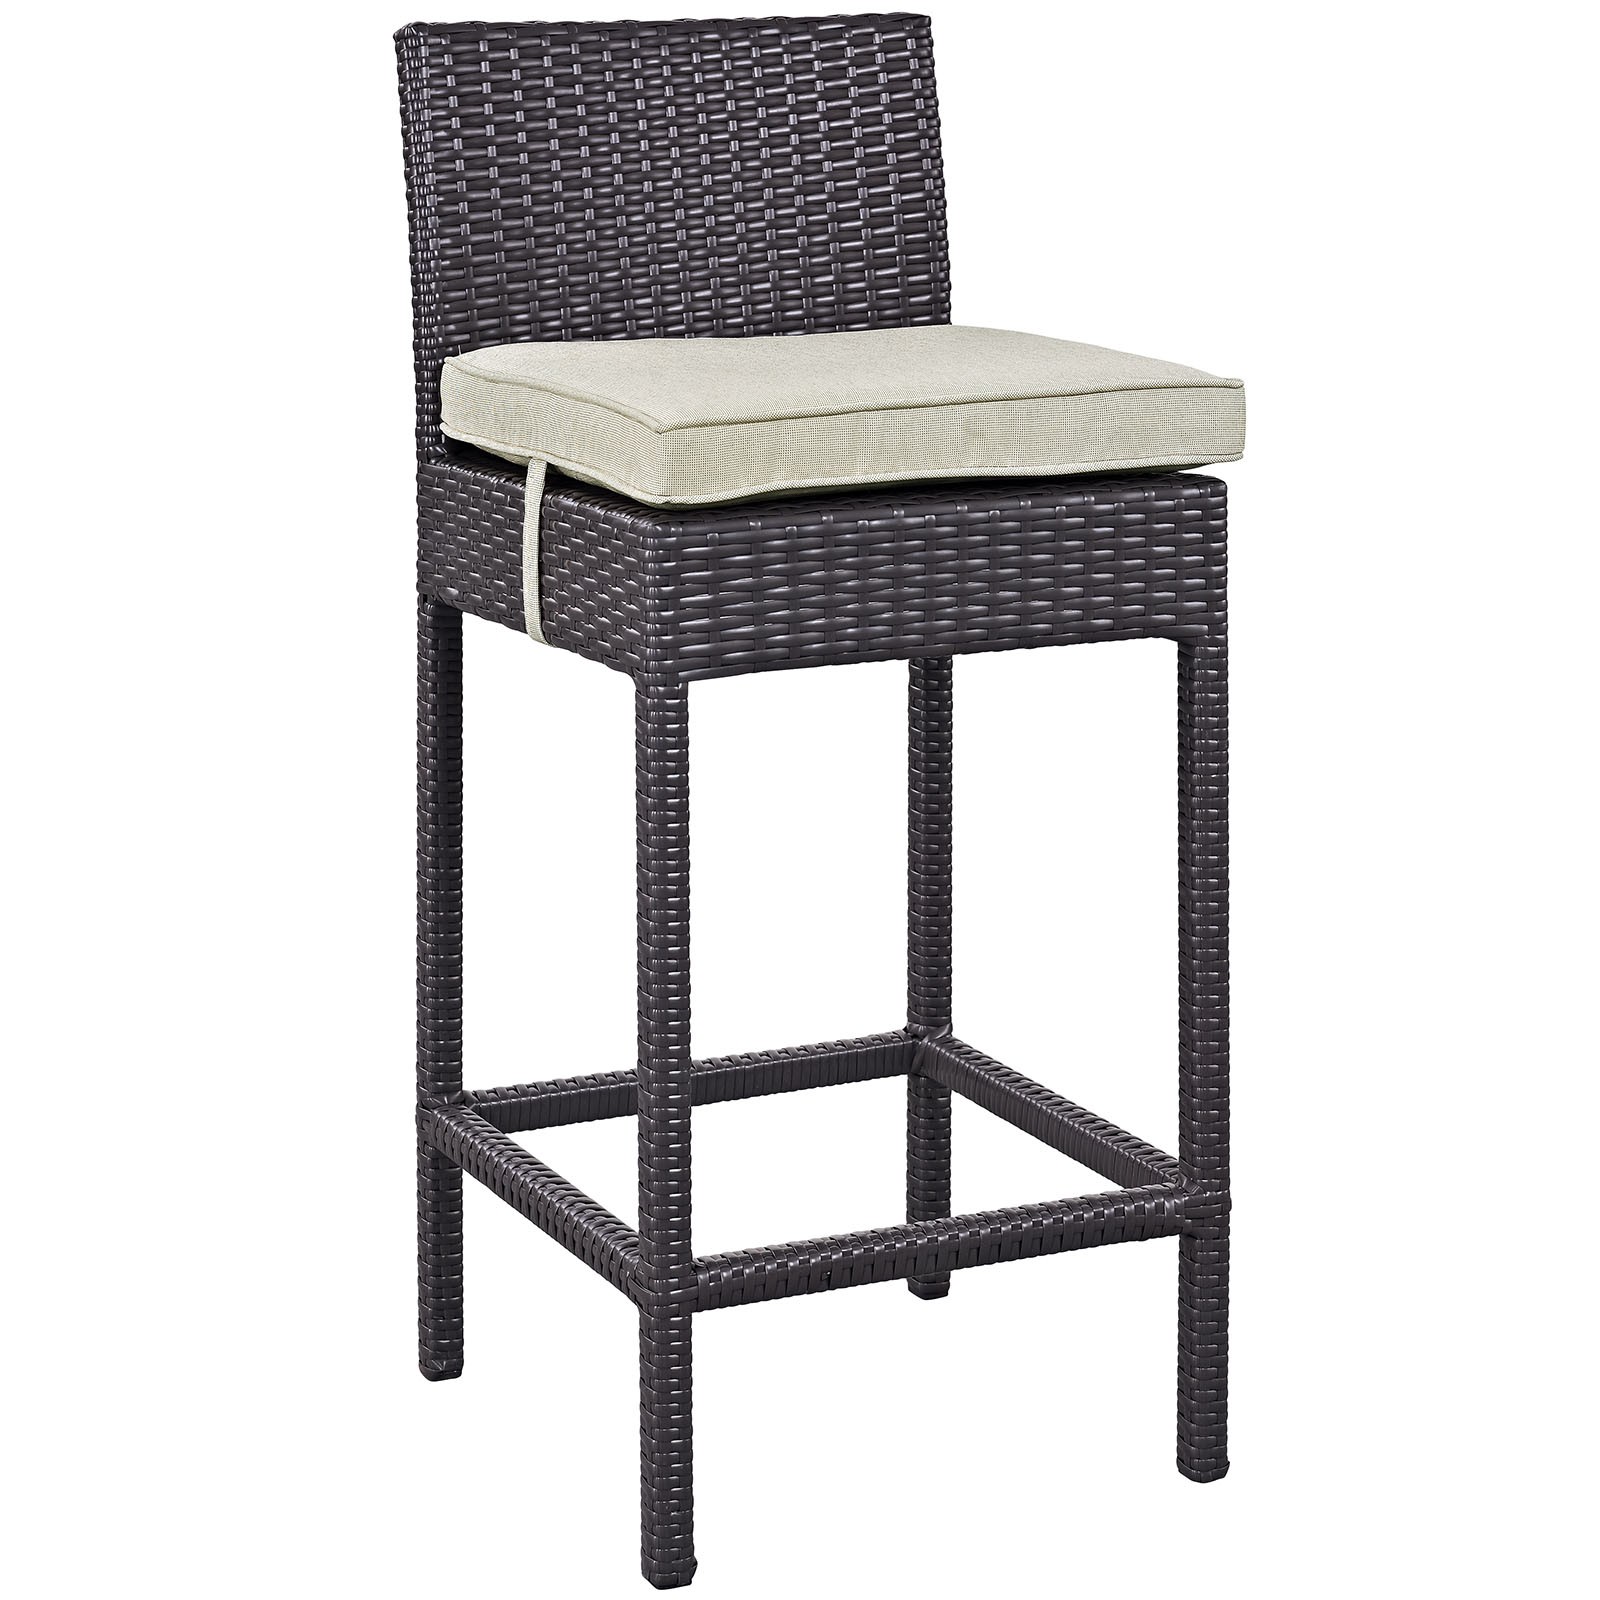 Modway Convene Outdoor Patio Fabric Bar Stool, Multiple Colors